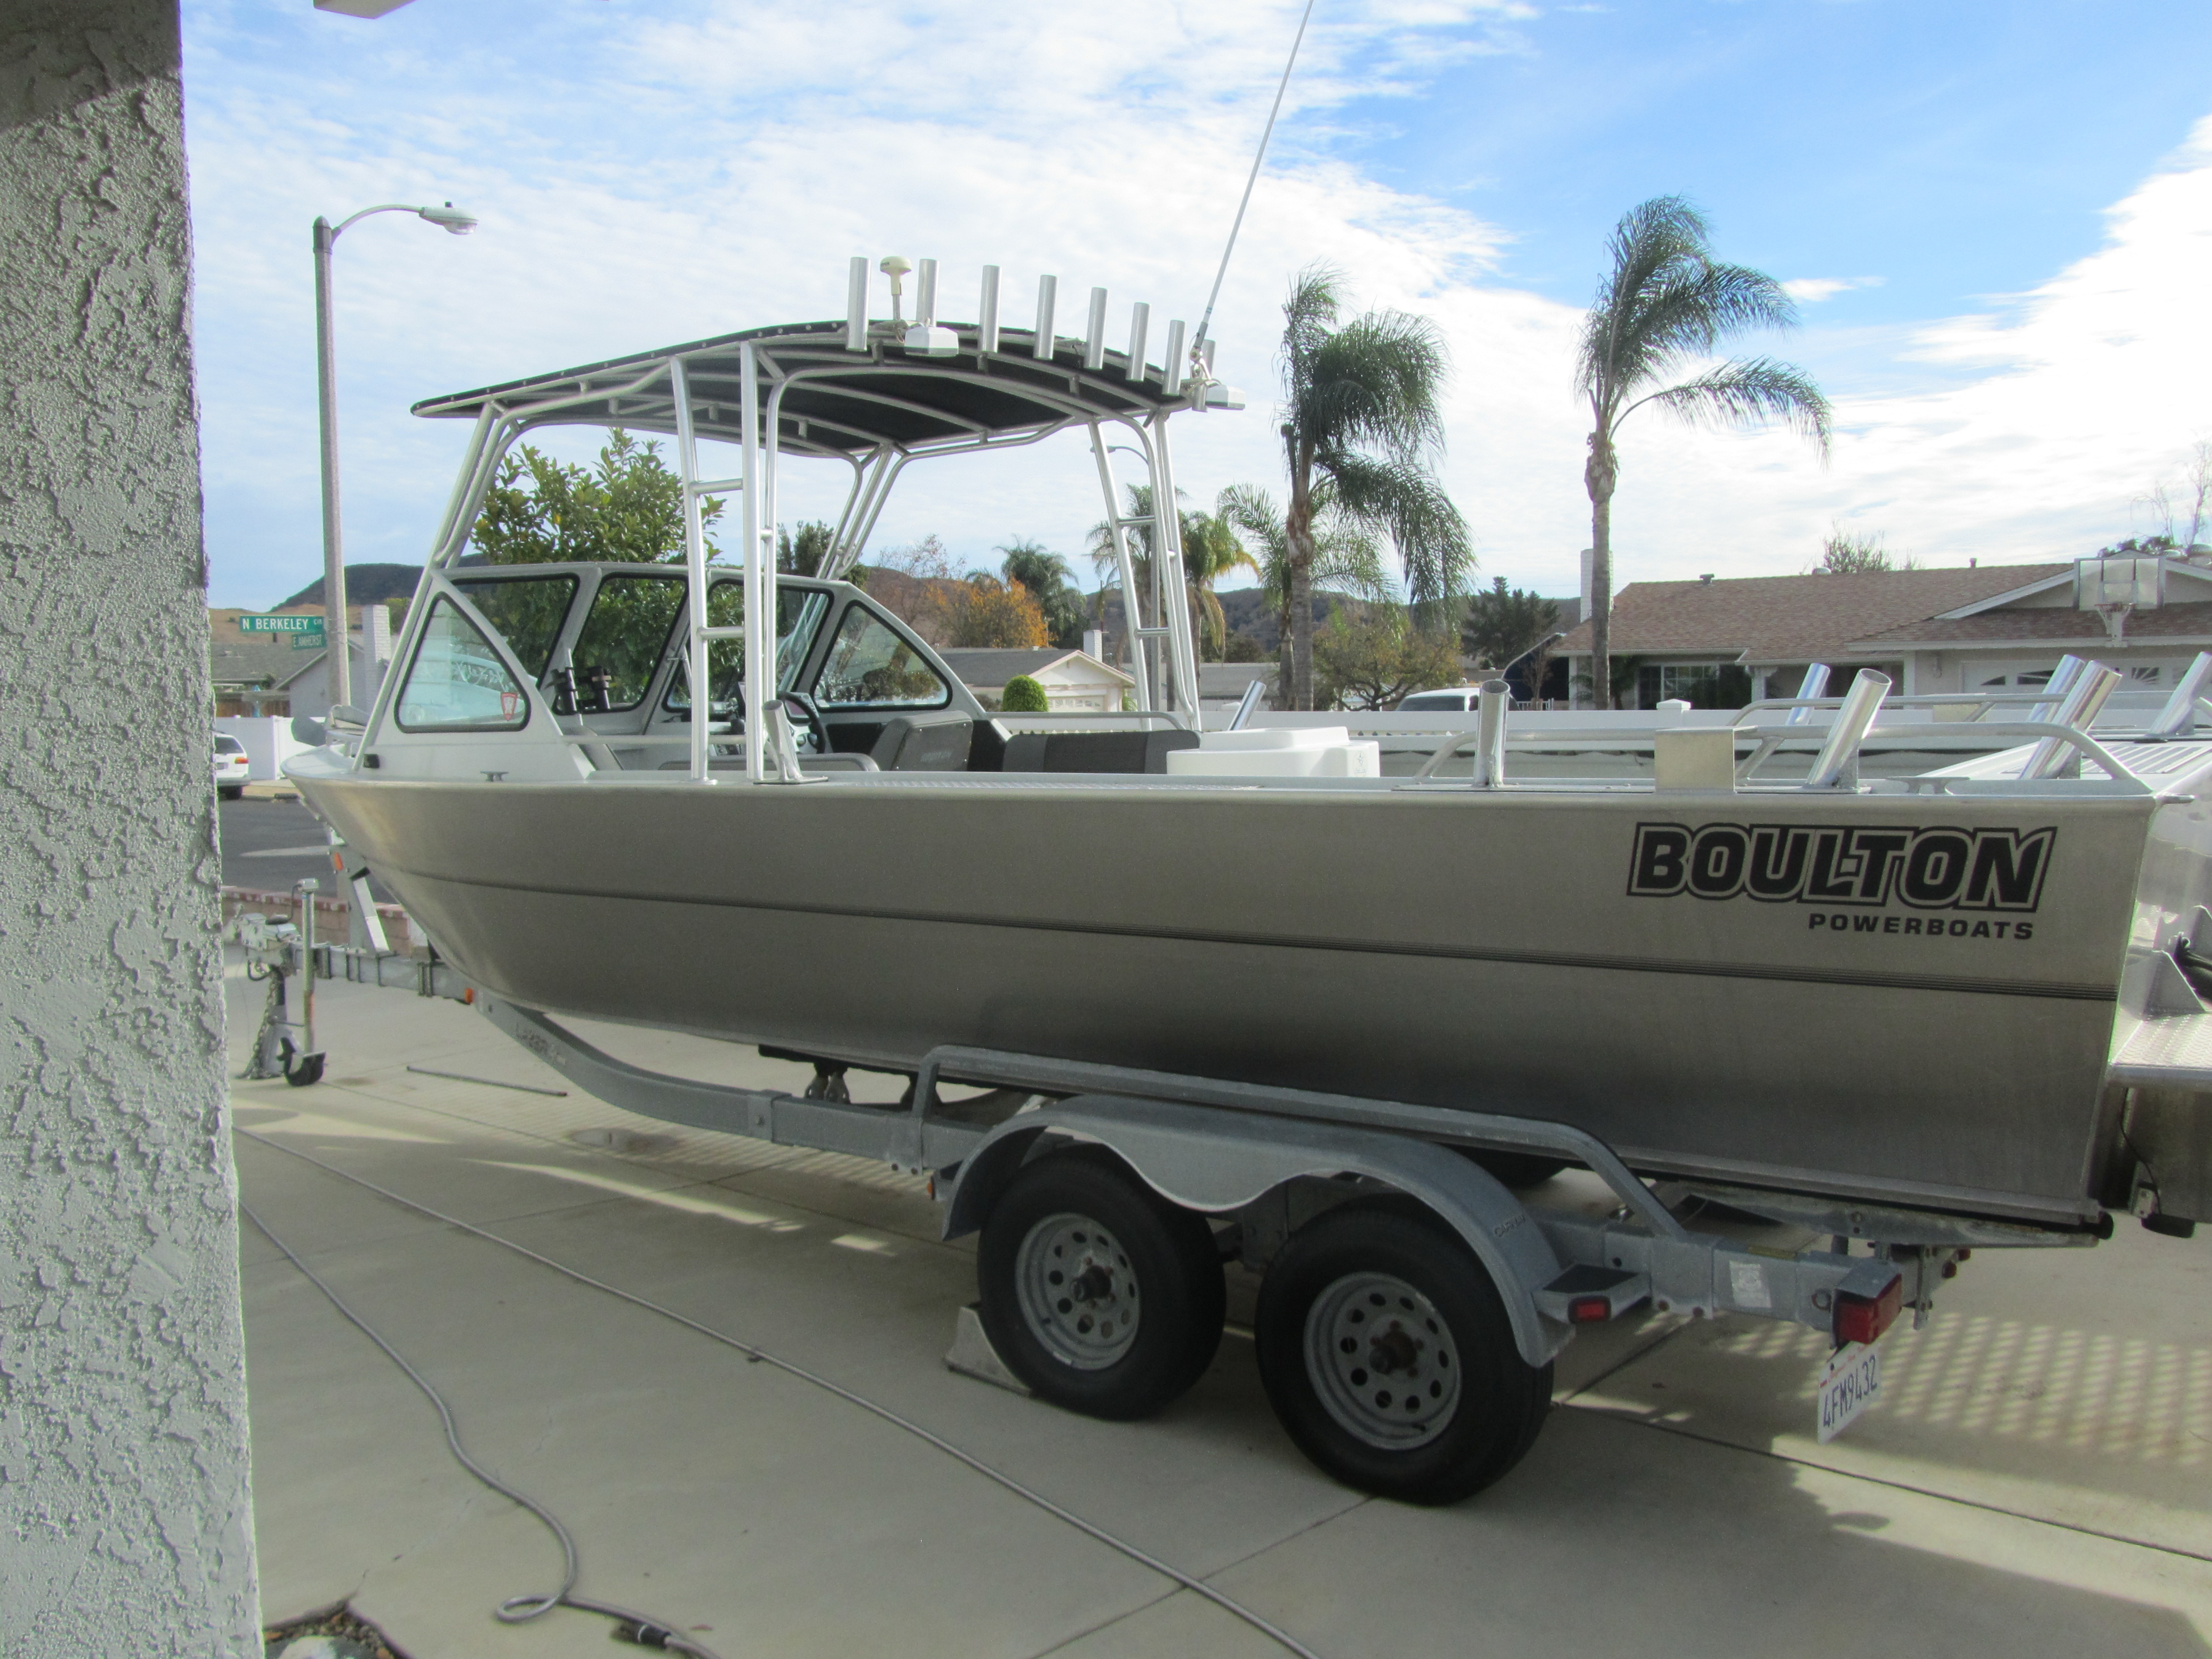 Aluminum Fishing Boats For Sale >> Check Out This 2005 Boulton Aluminum Fishing Boat On Boattrader Com